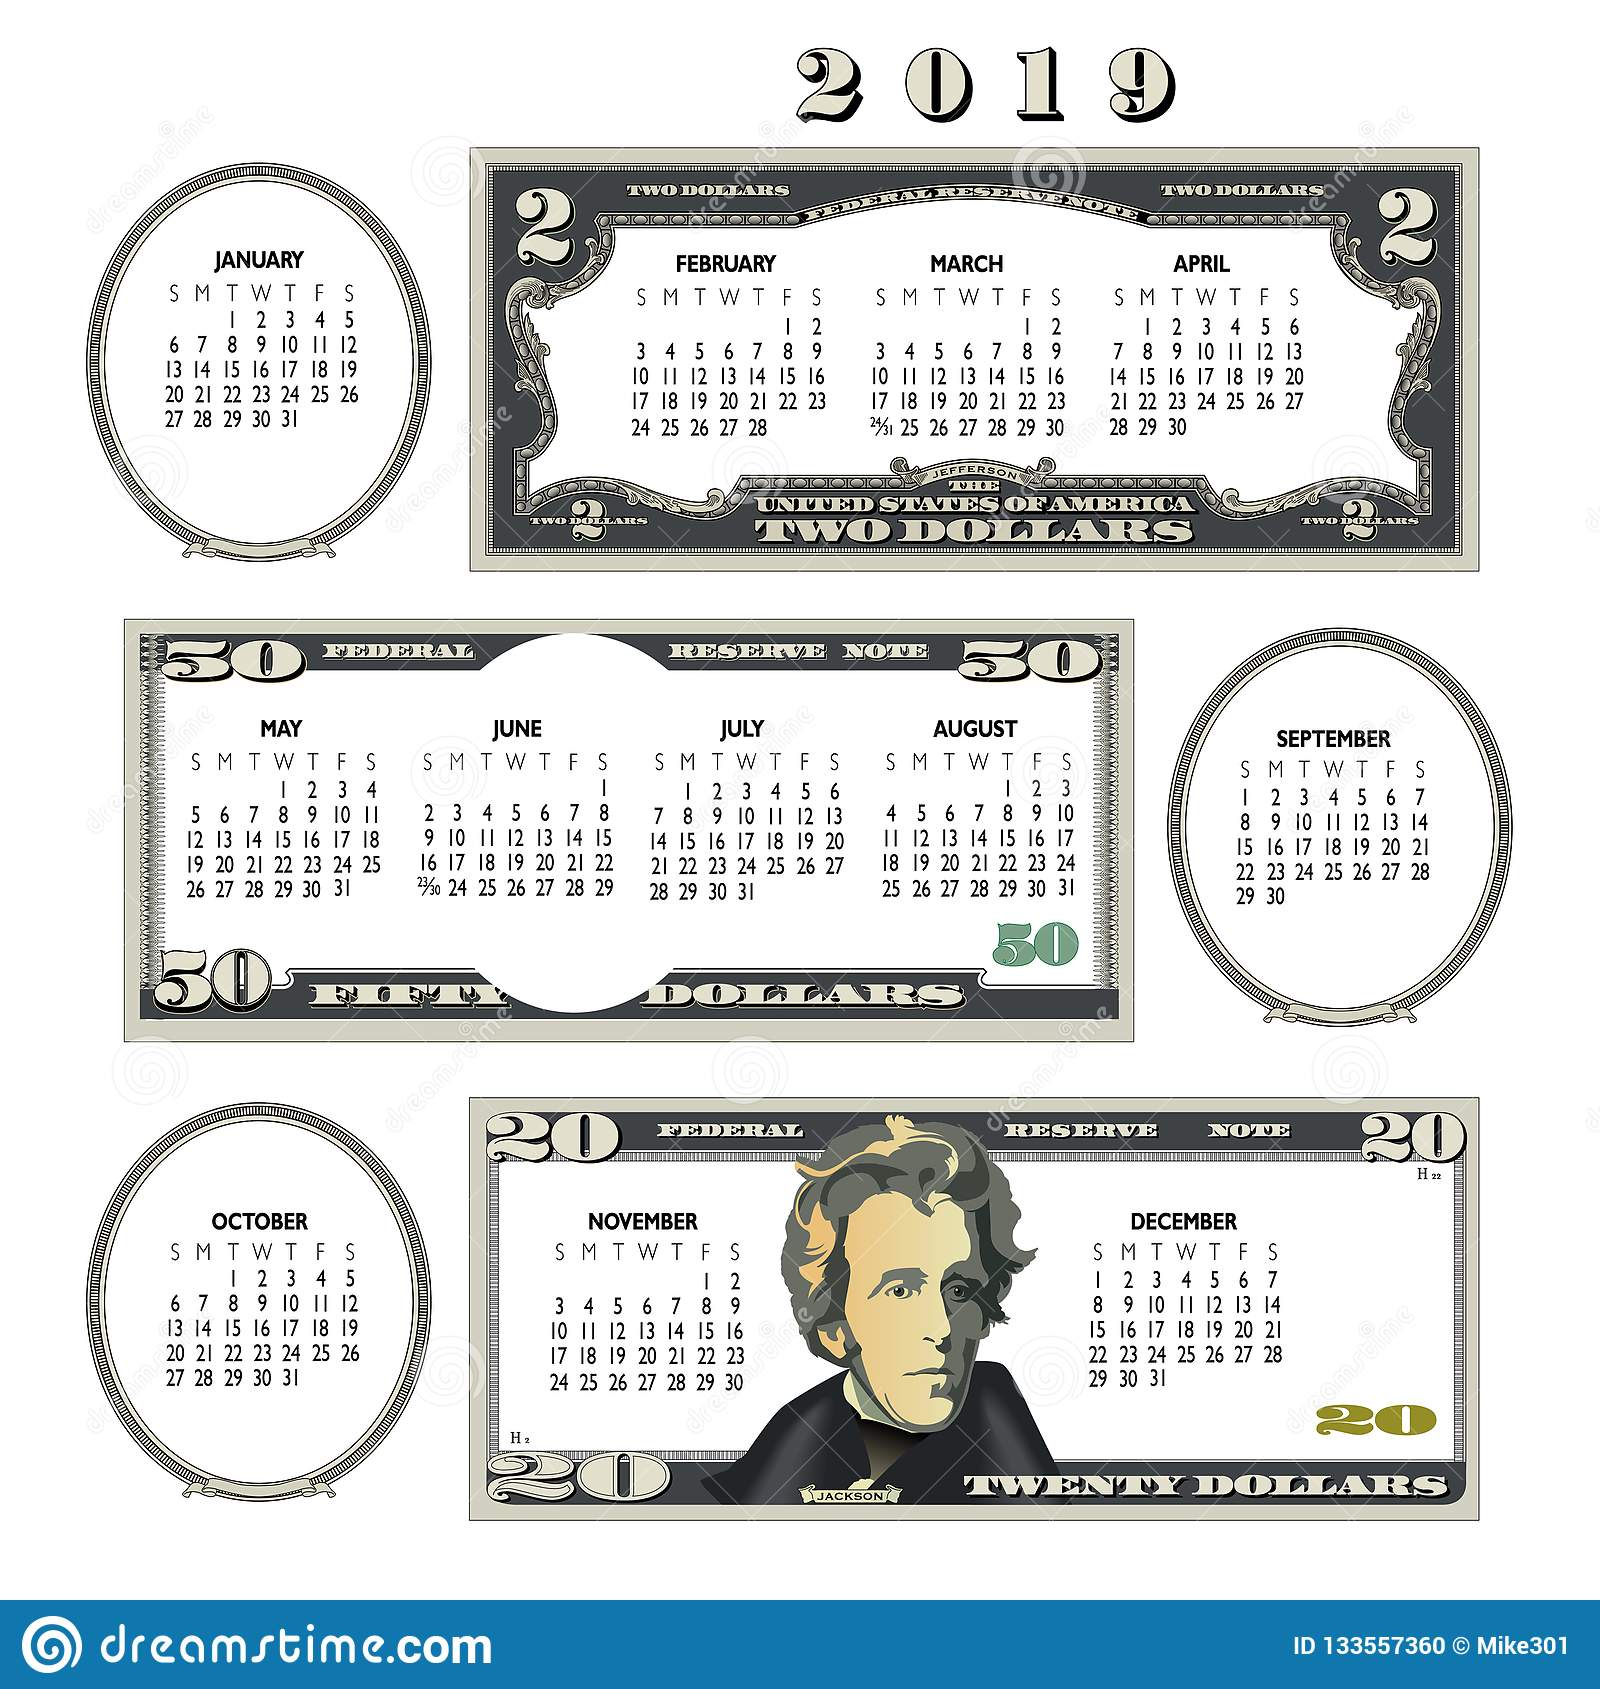 2019 money calendar, ideal for any business.